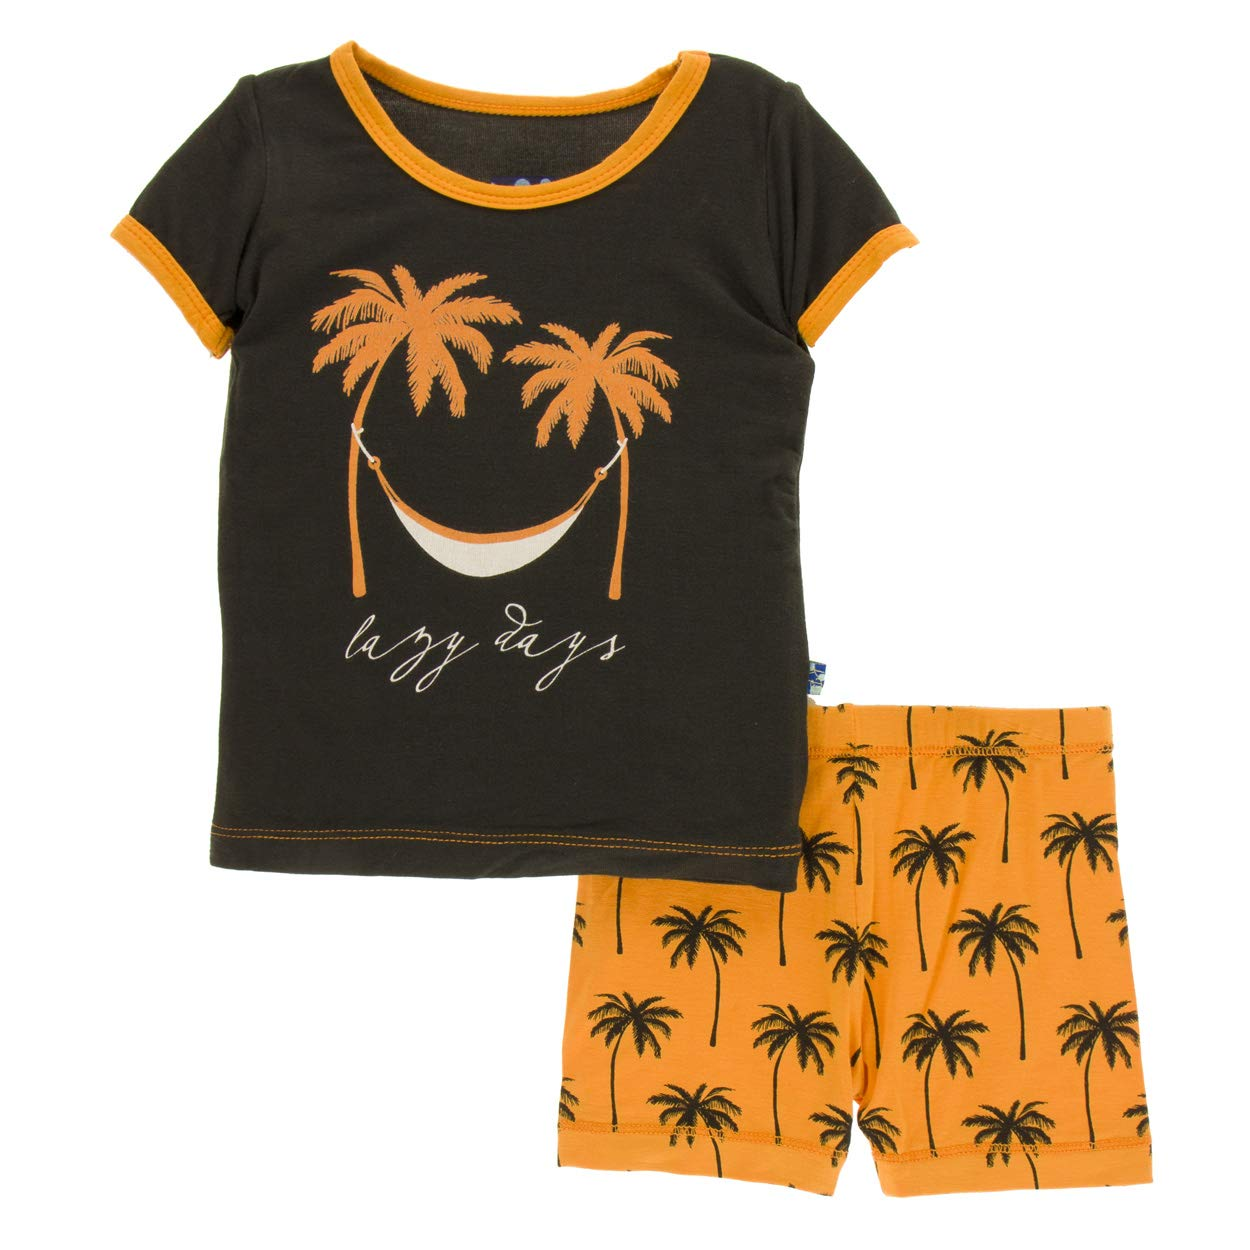 Kickee Pants Little Boys Print Short Sleeve Pajama Set with Shorts Apricot Palm Trees 5 Years